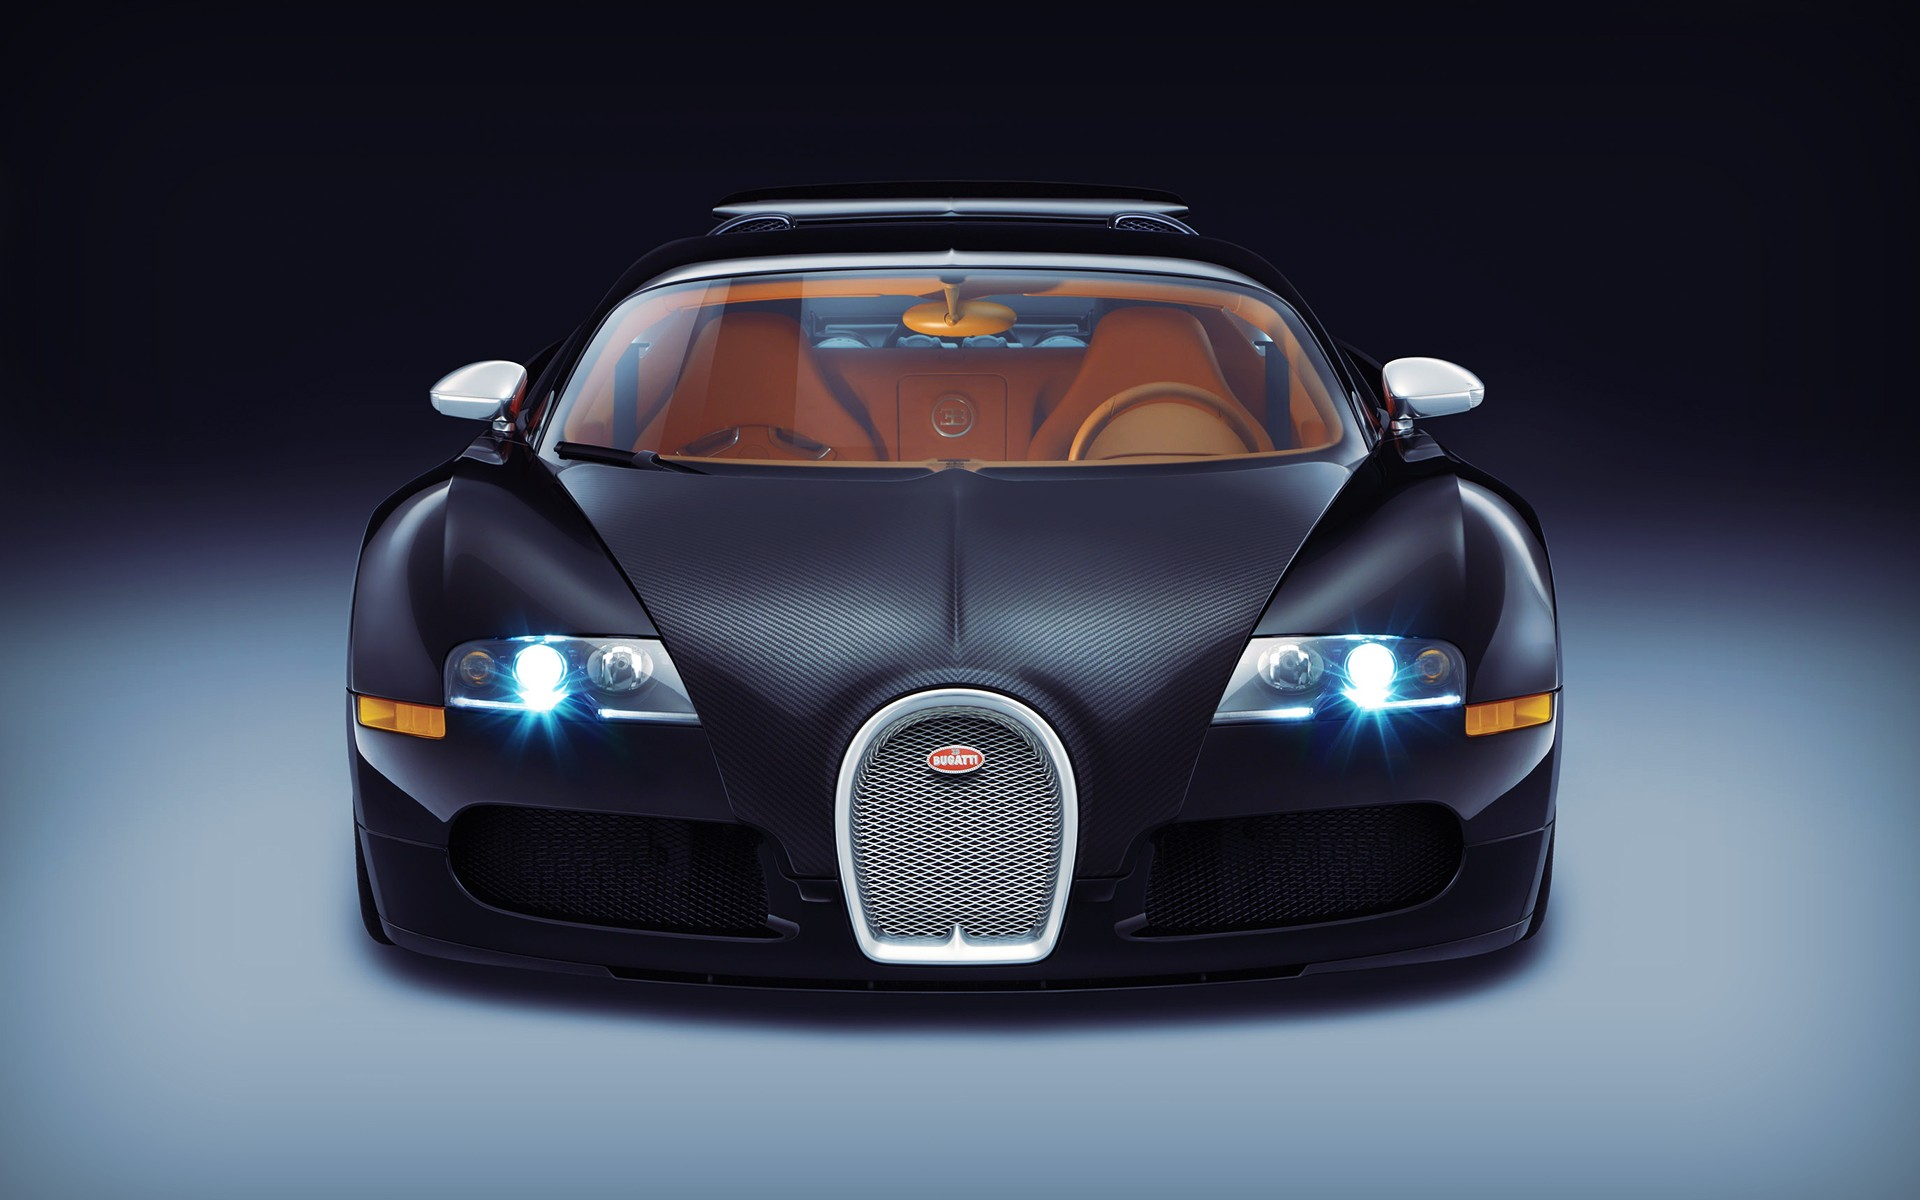 Daily wallpaper bugatti veyron i like to waste my time voltagebd Image collections